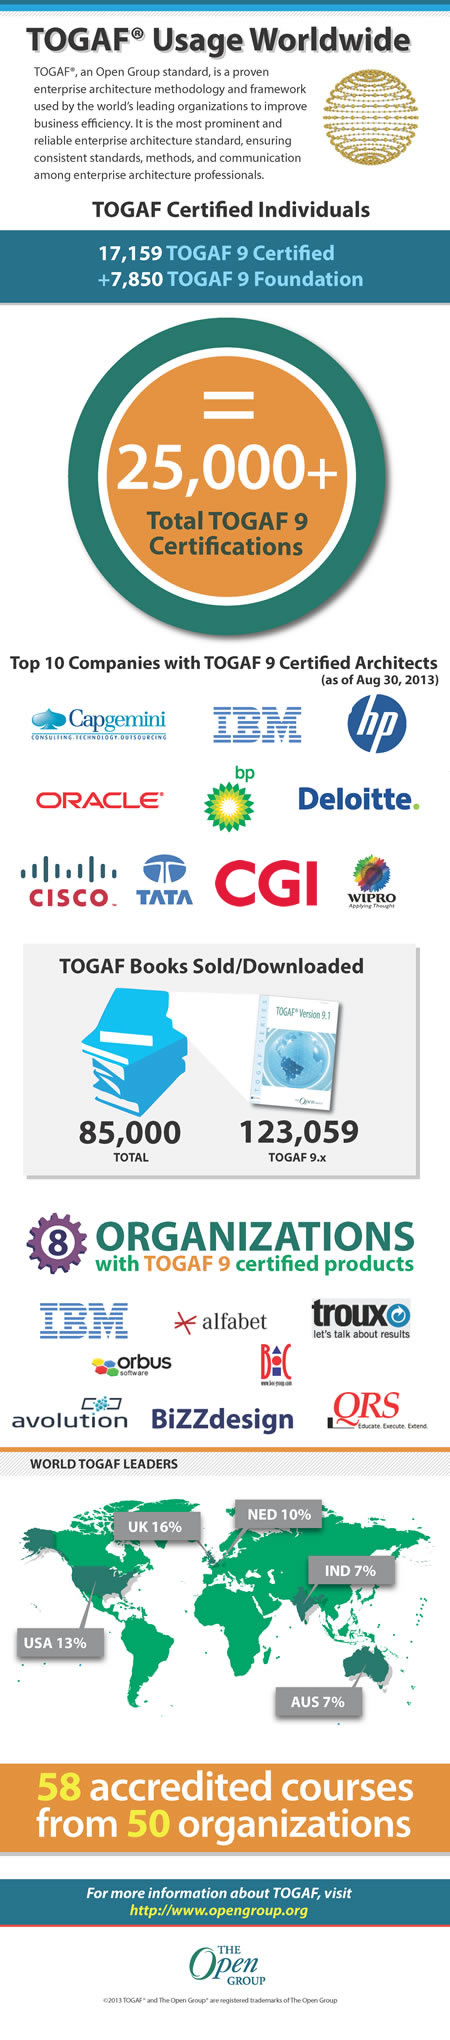 Togaf 9 Certification Reaches 25000 Milestone The Open Group Blog